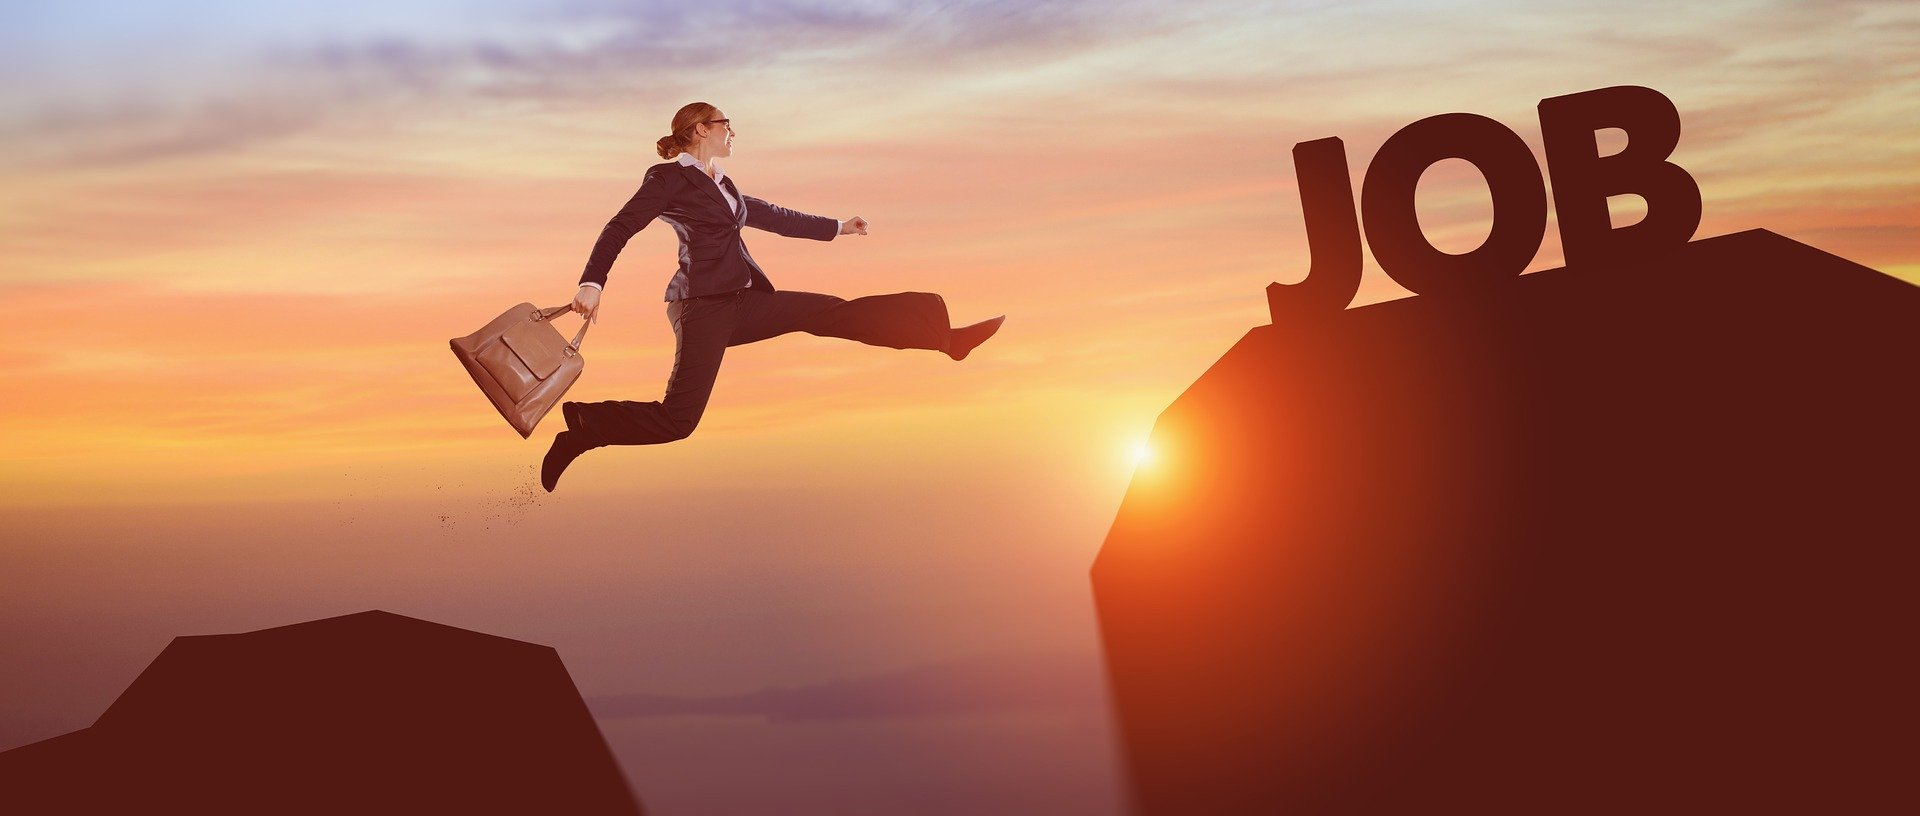 business woman jumping from one rock to another that is labeled 'Job'